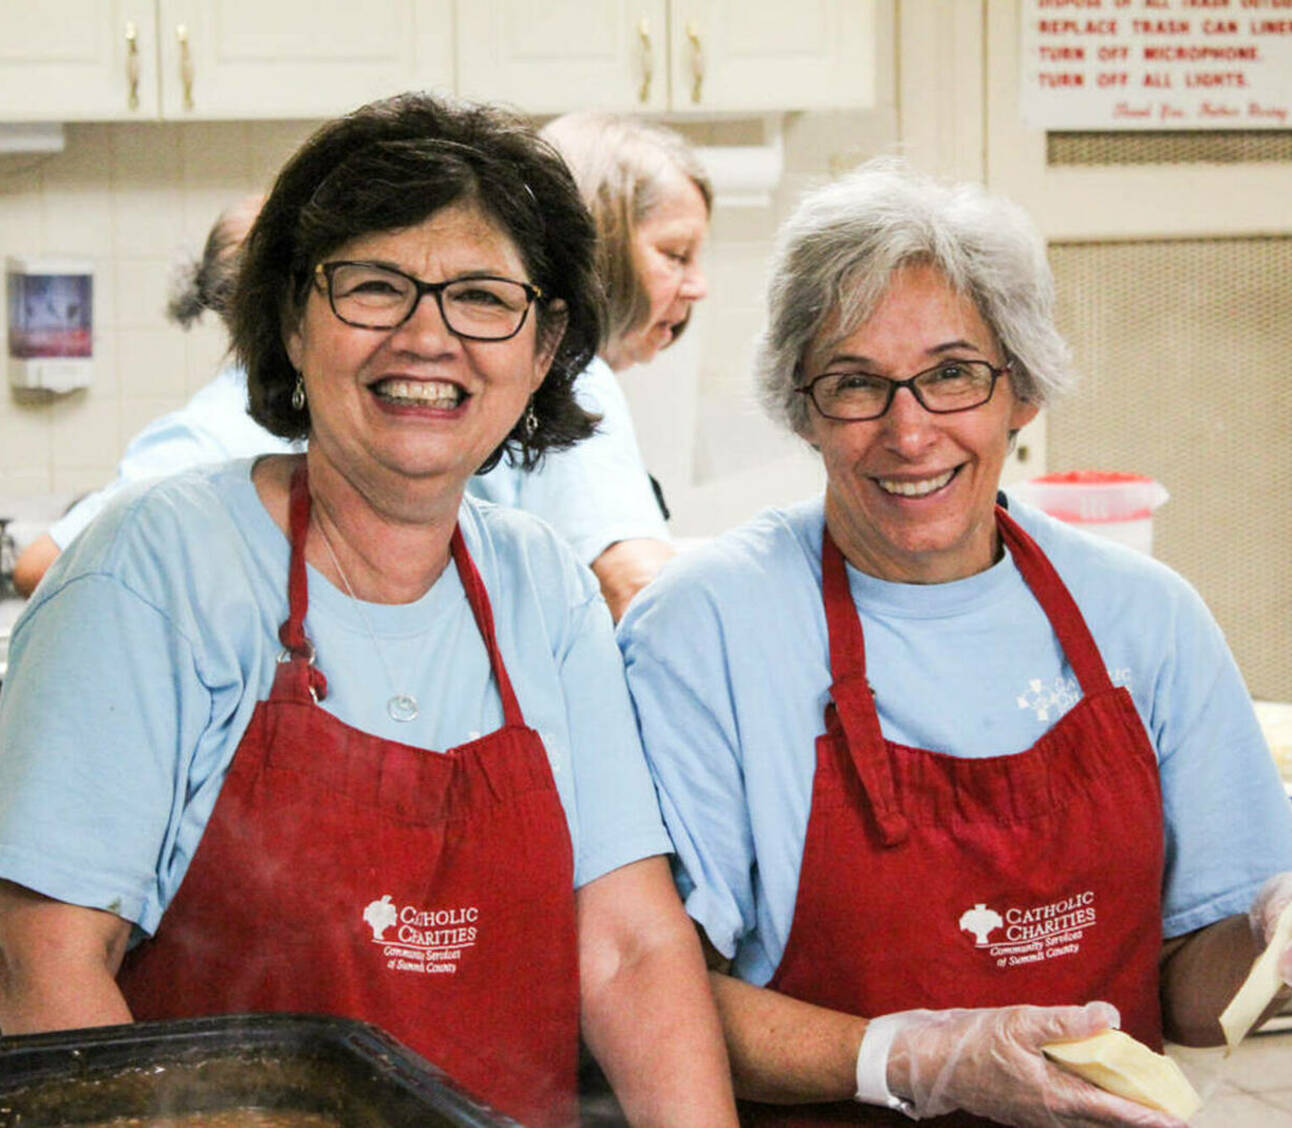 Smiling women in aprons